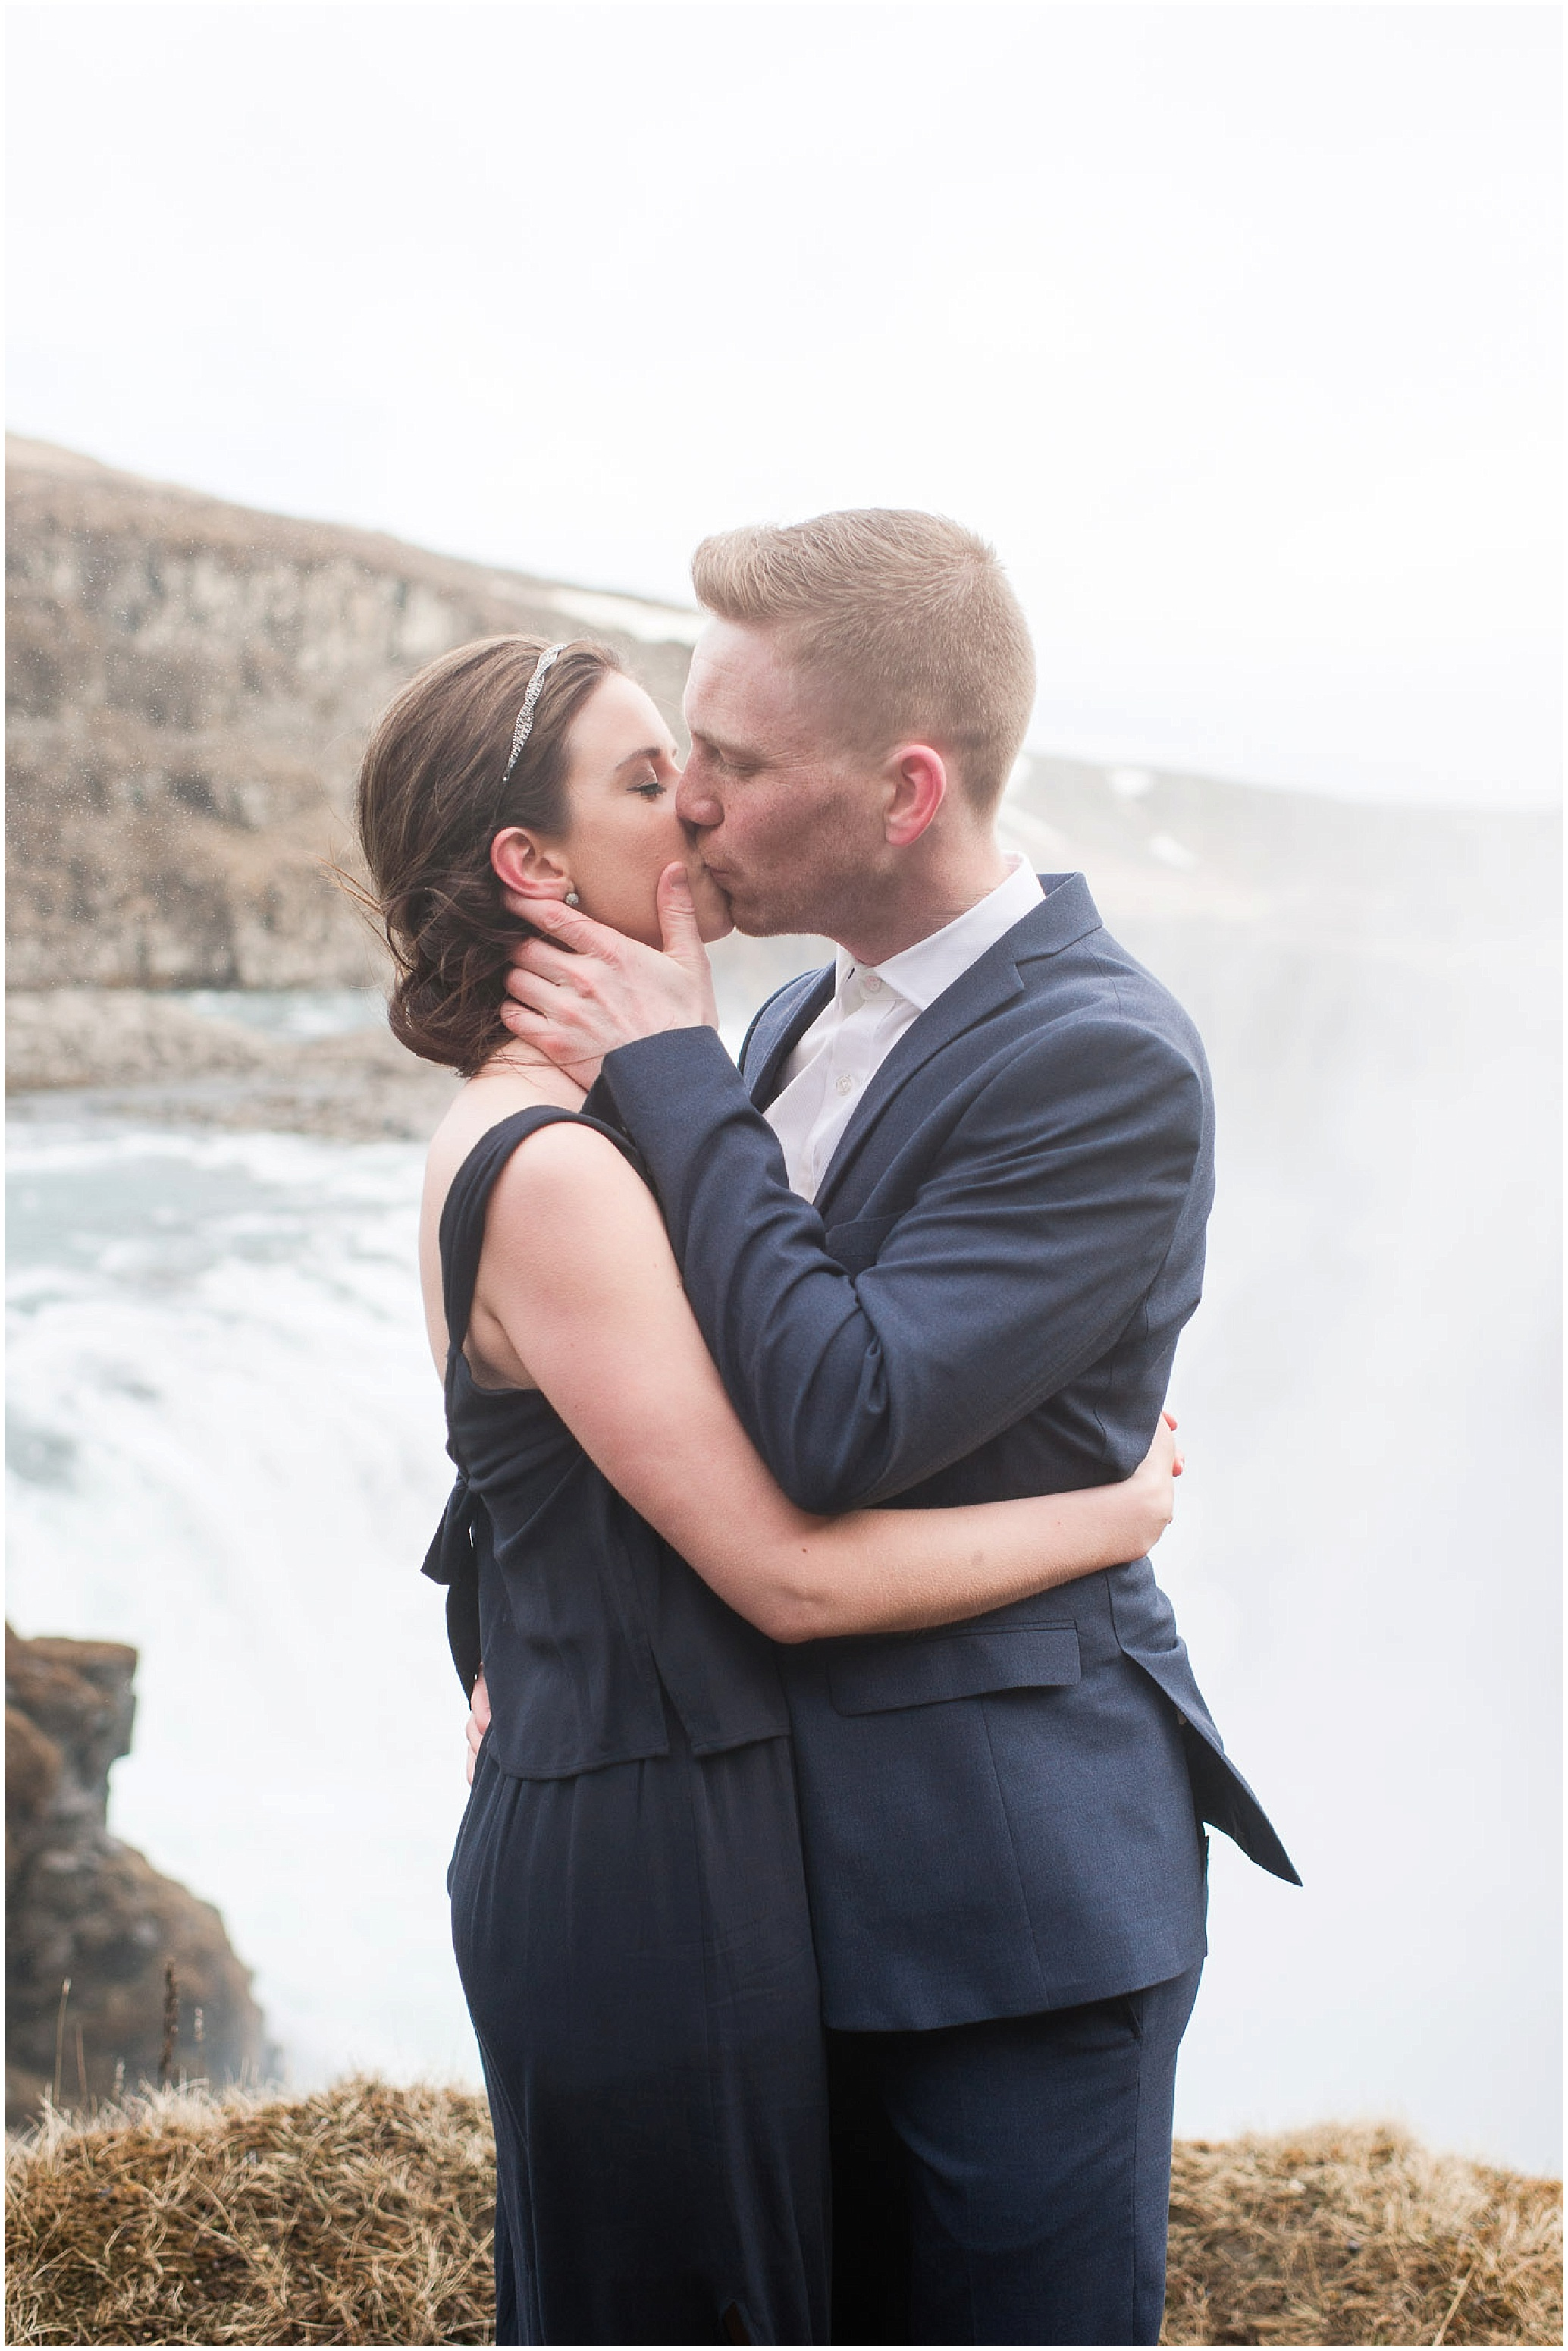 Hannah Leigh Photography Iceland Elopement Photographer_0134.jpg